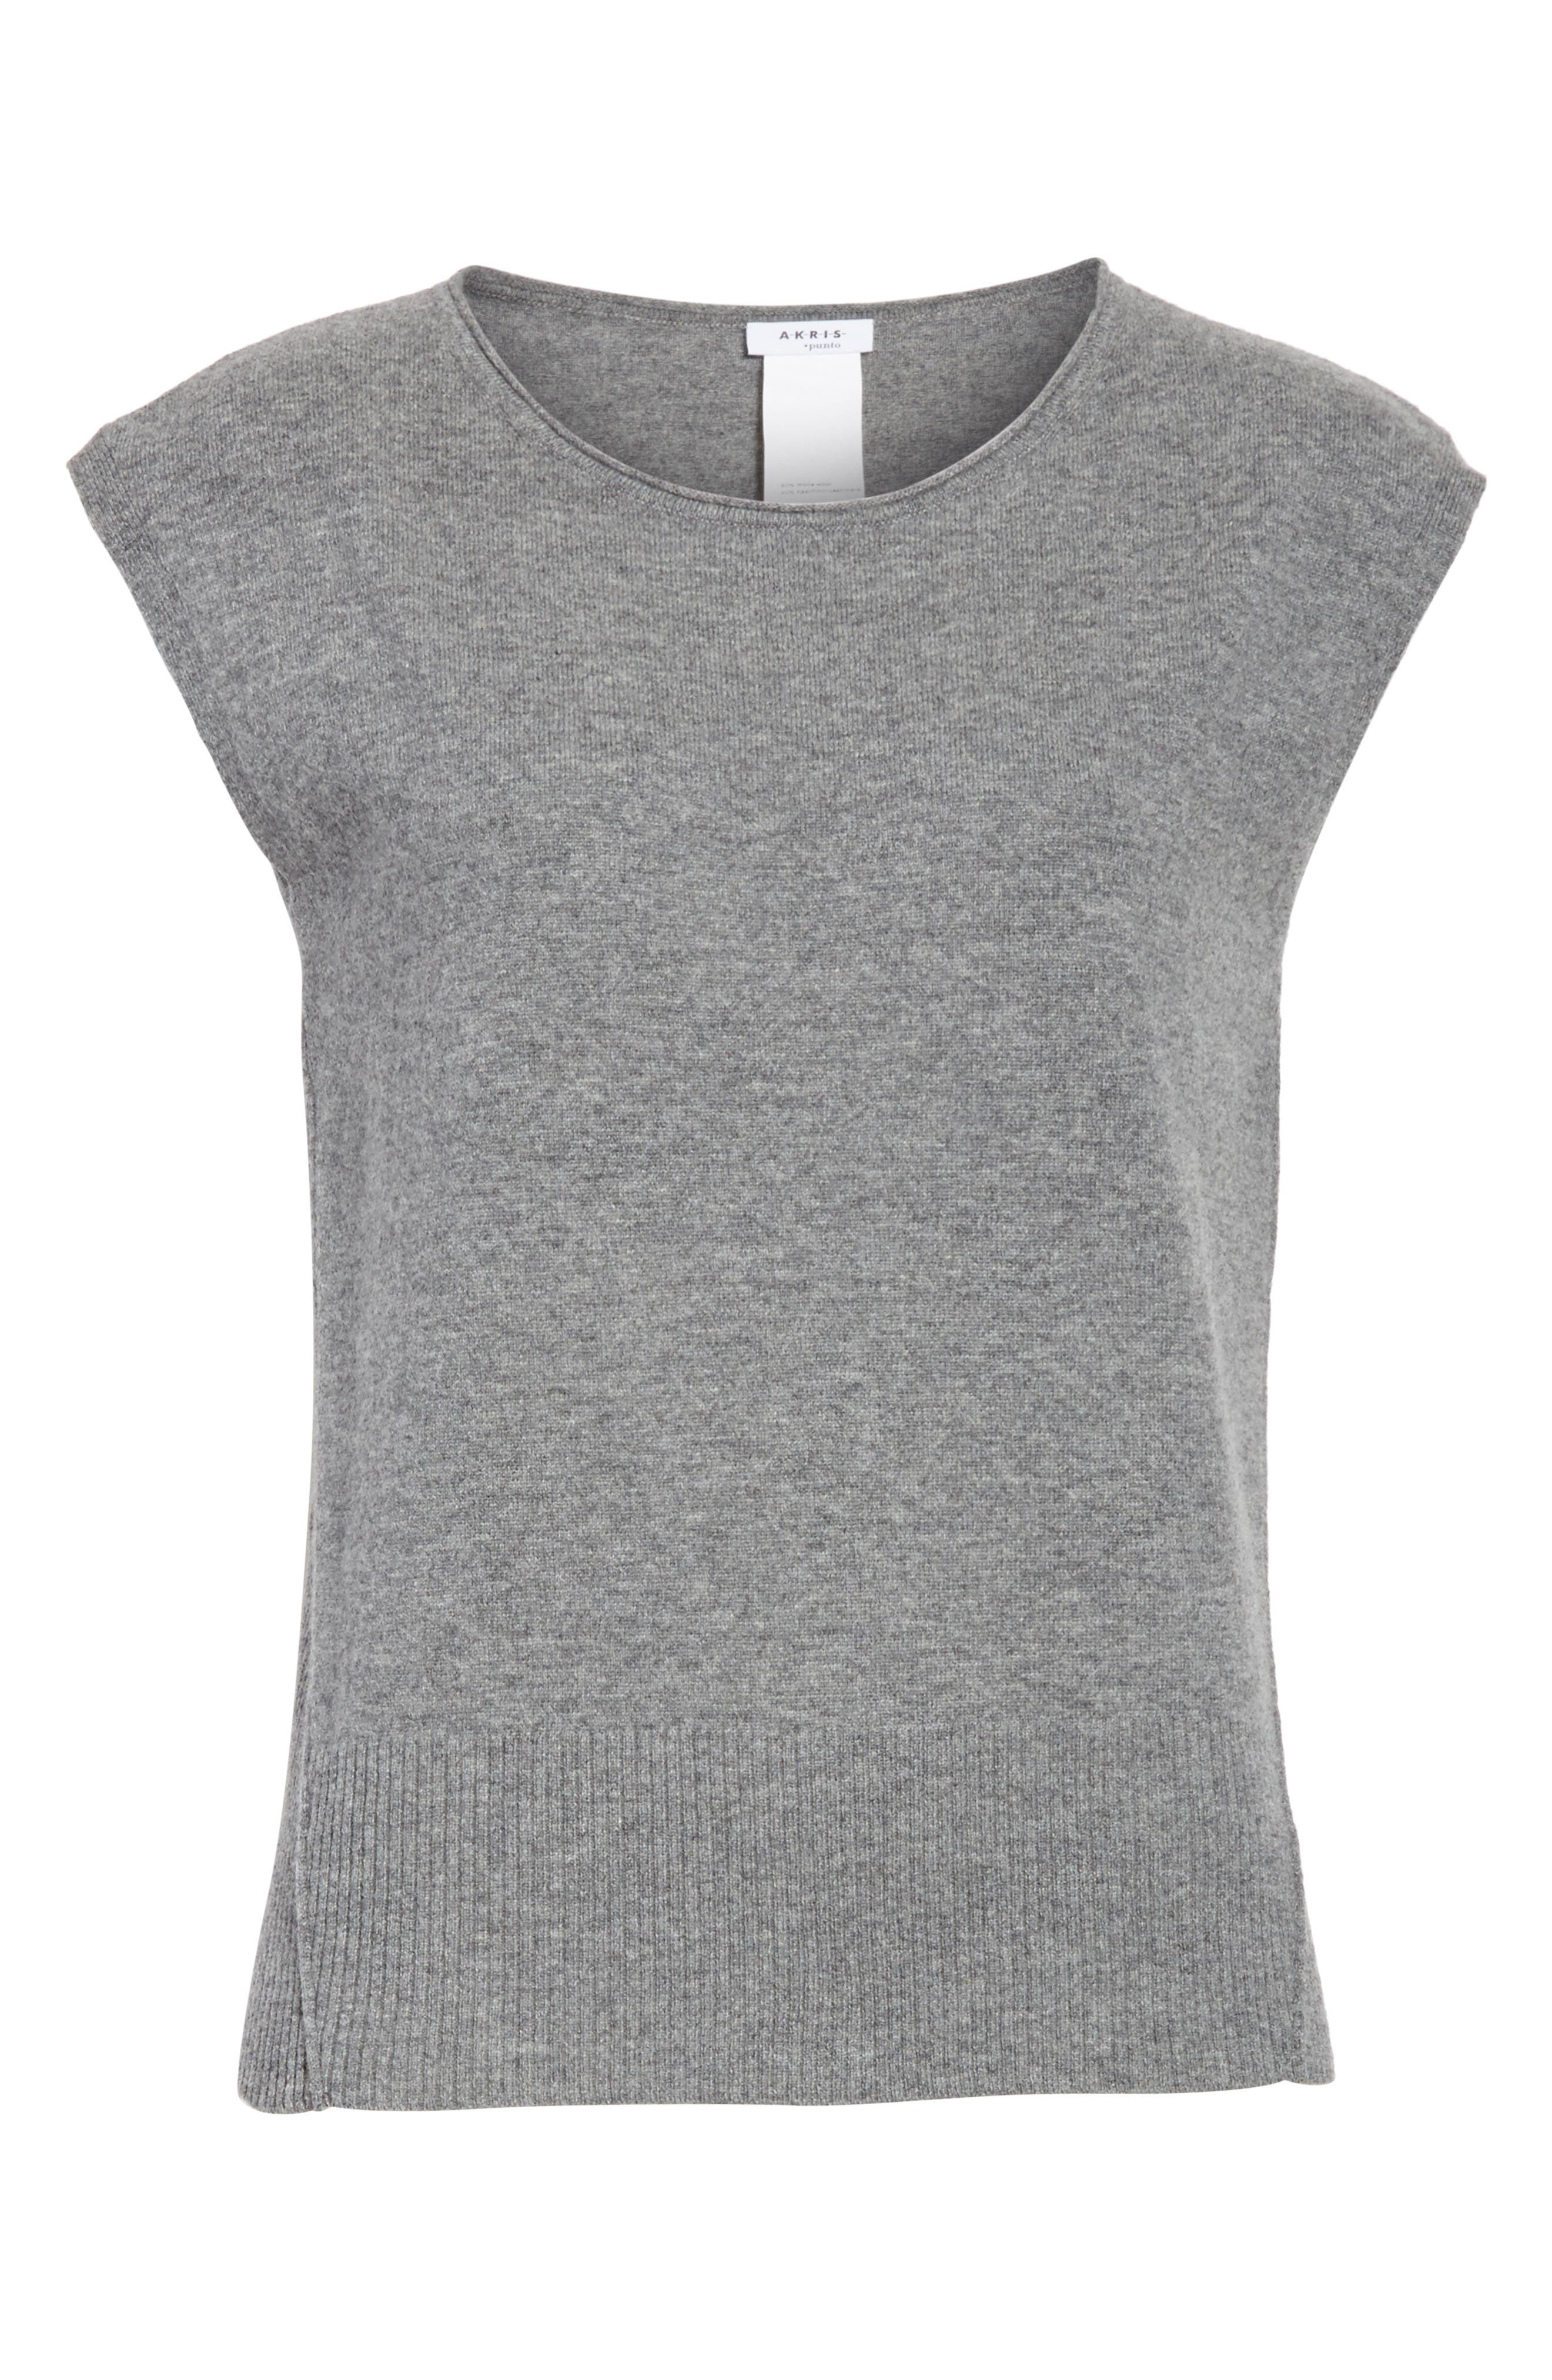 Wool & Cashmere Knit Top,                             Alternate thumbnail 6, color,                             081